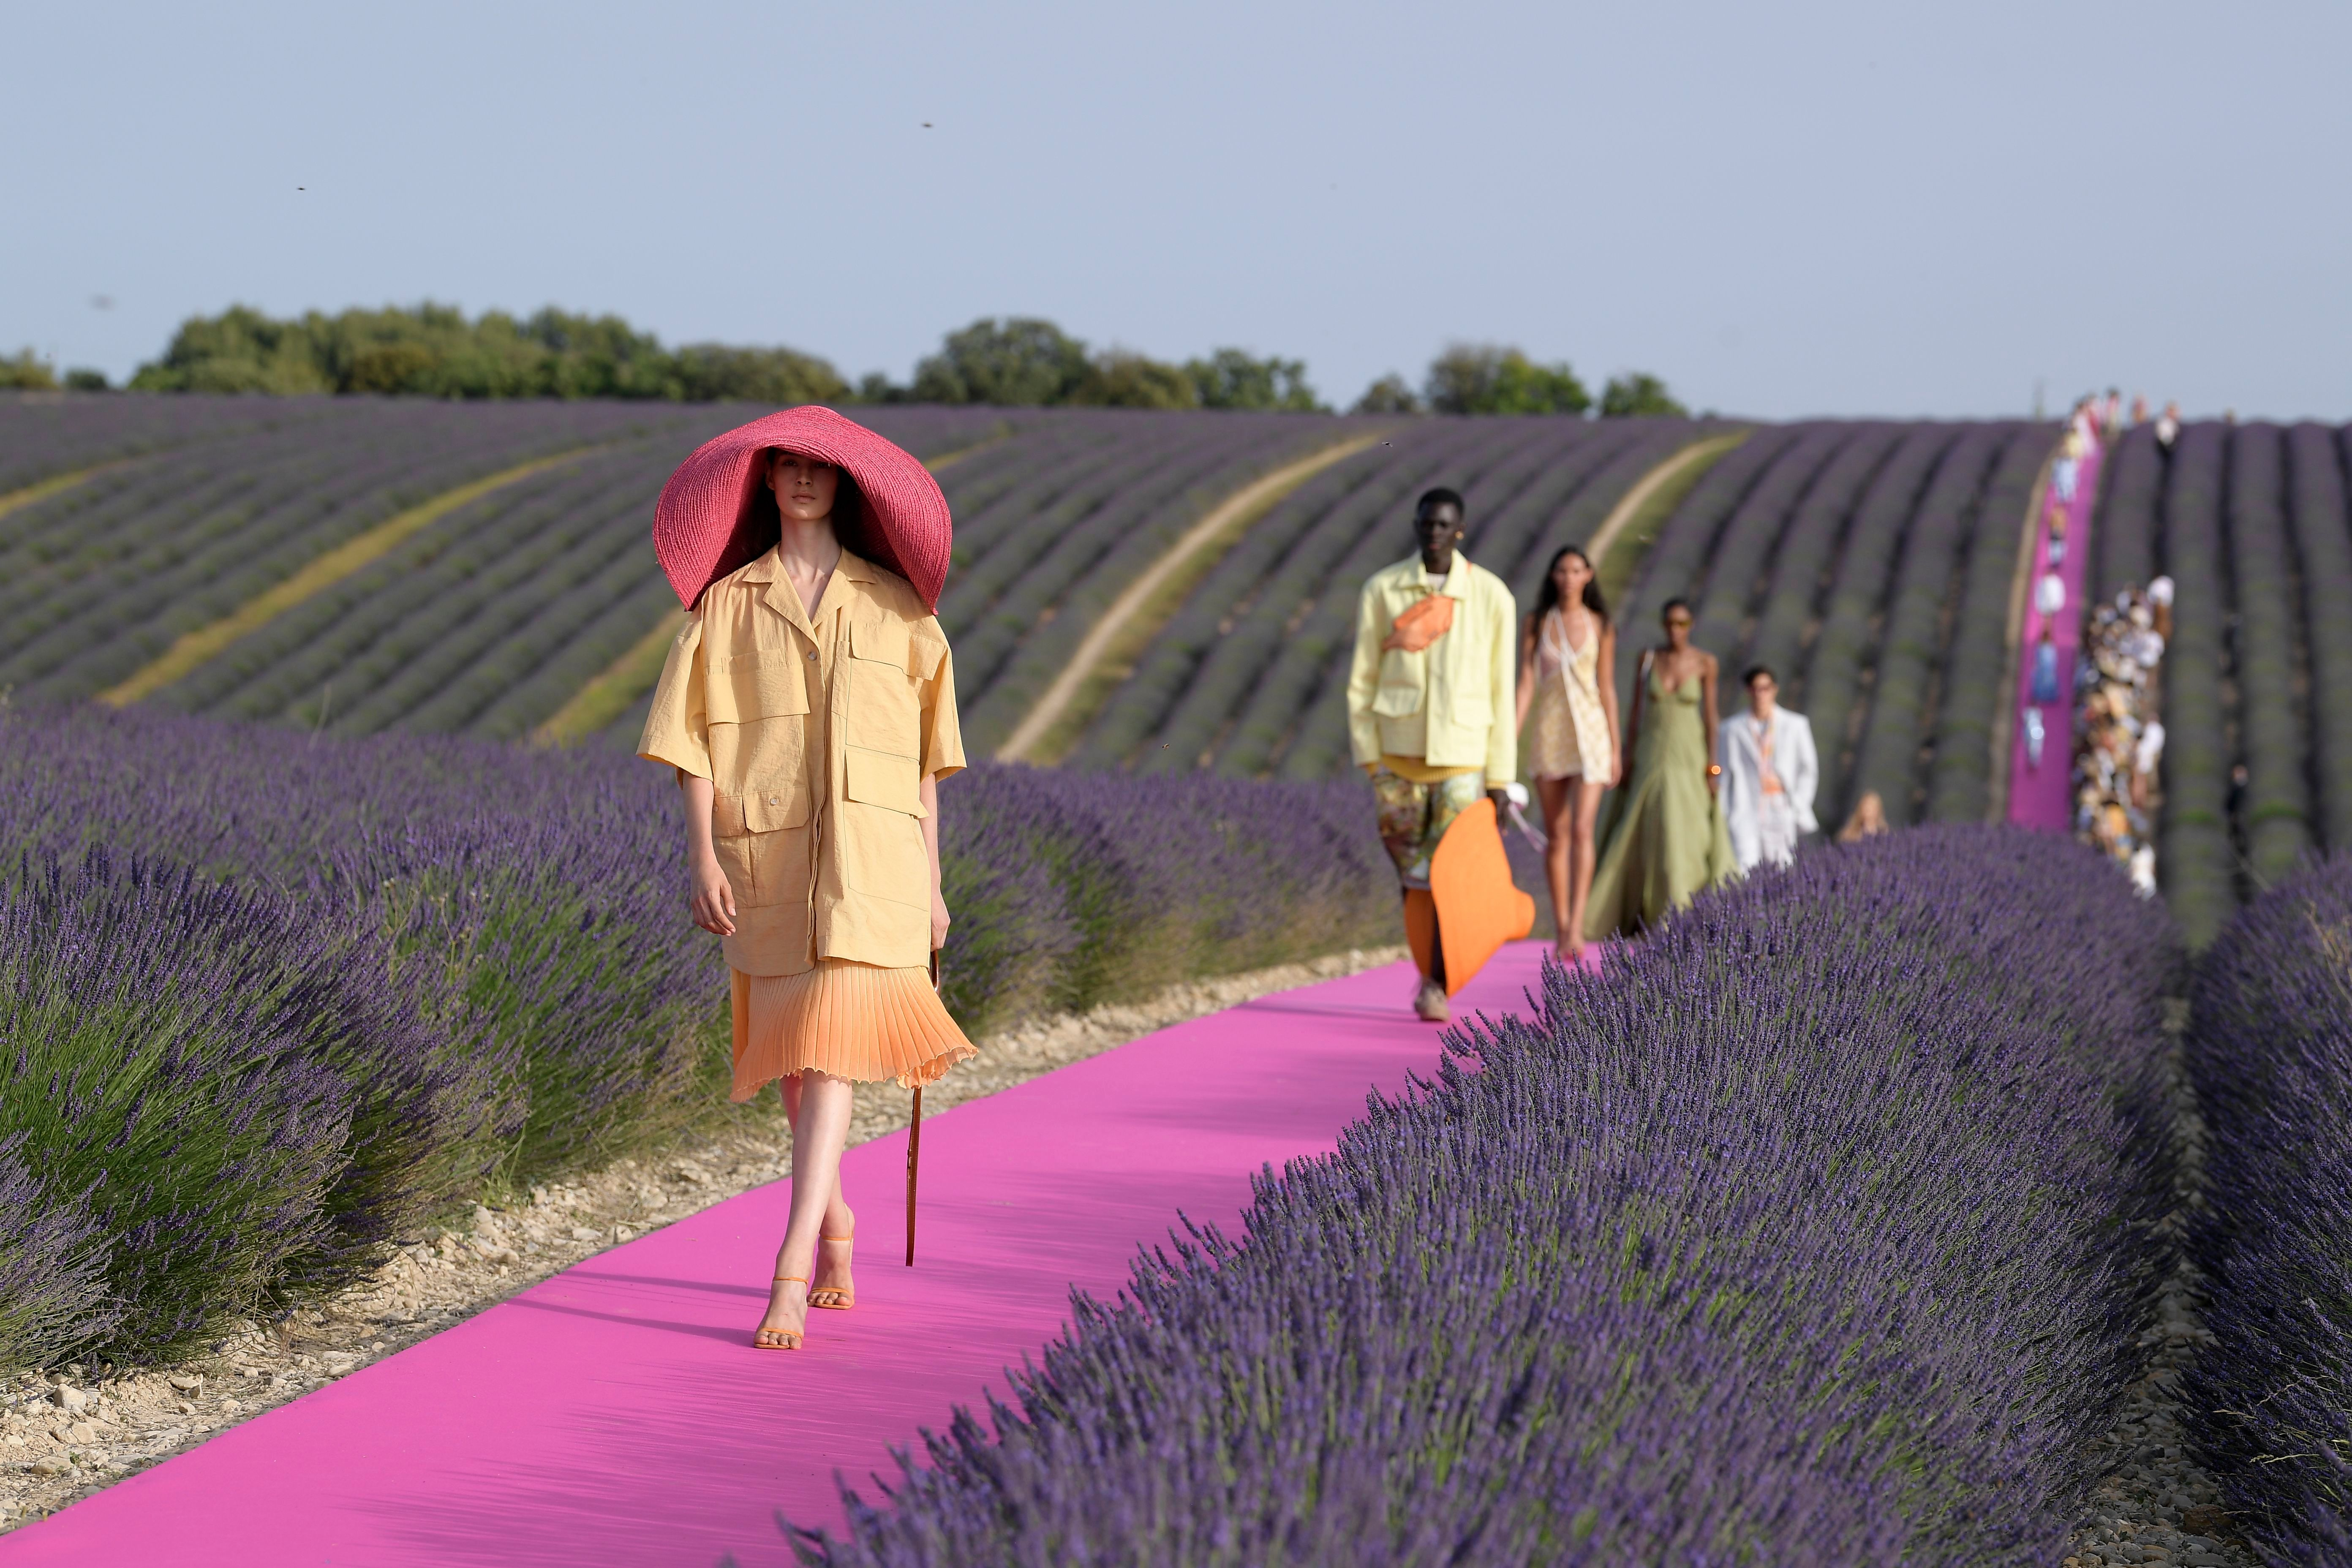 Models on the catwalkJacquemus co-ed show, Runway, Spring Summer 2020, Provence, France - 24 Jun 2019